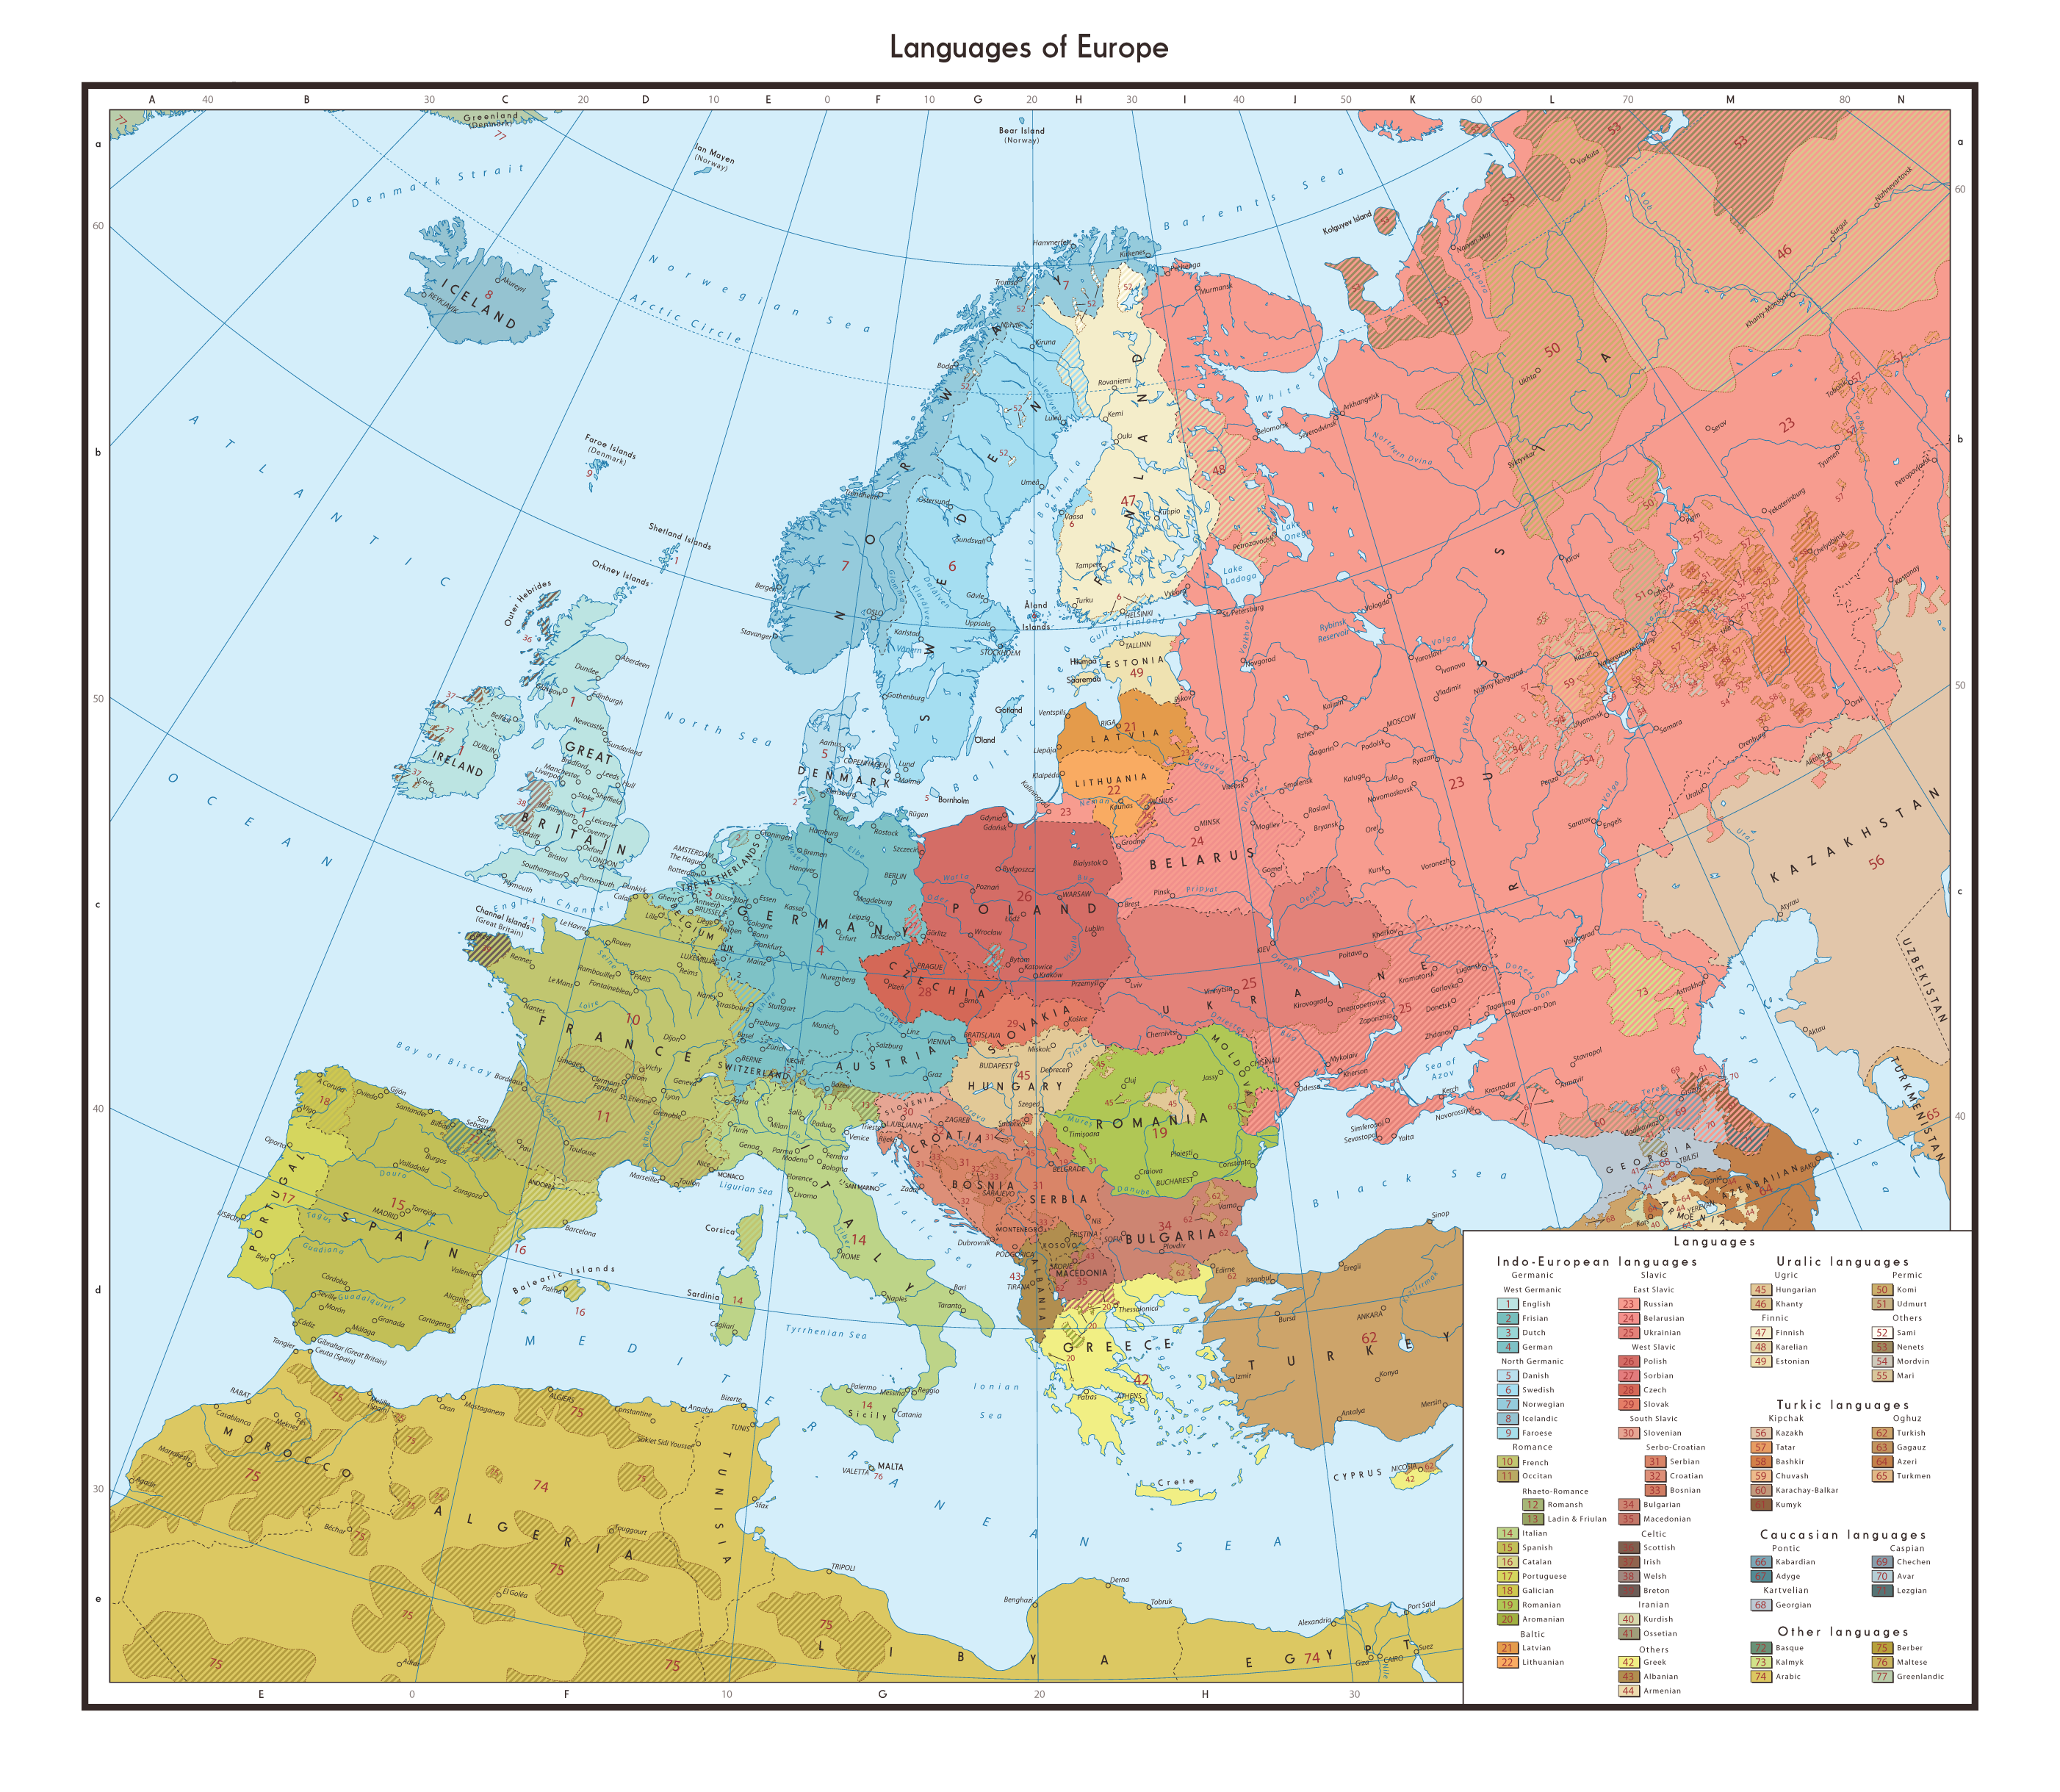 Linguistic and ethnic map of Europe